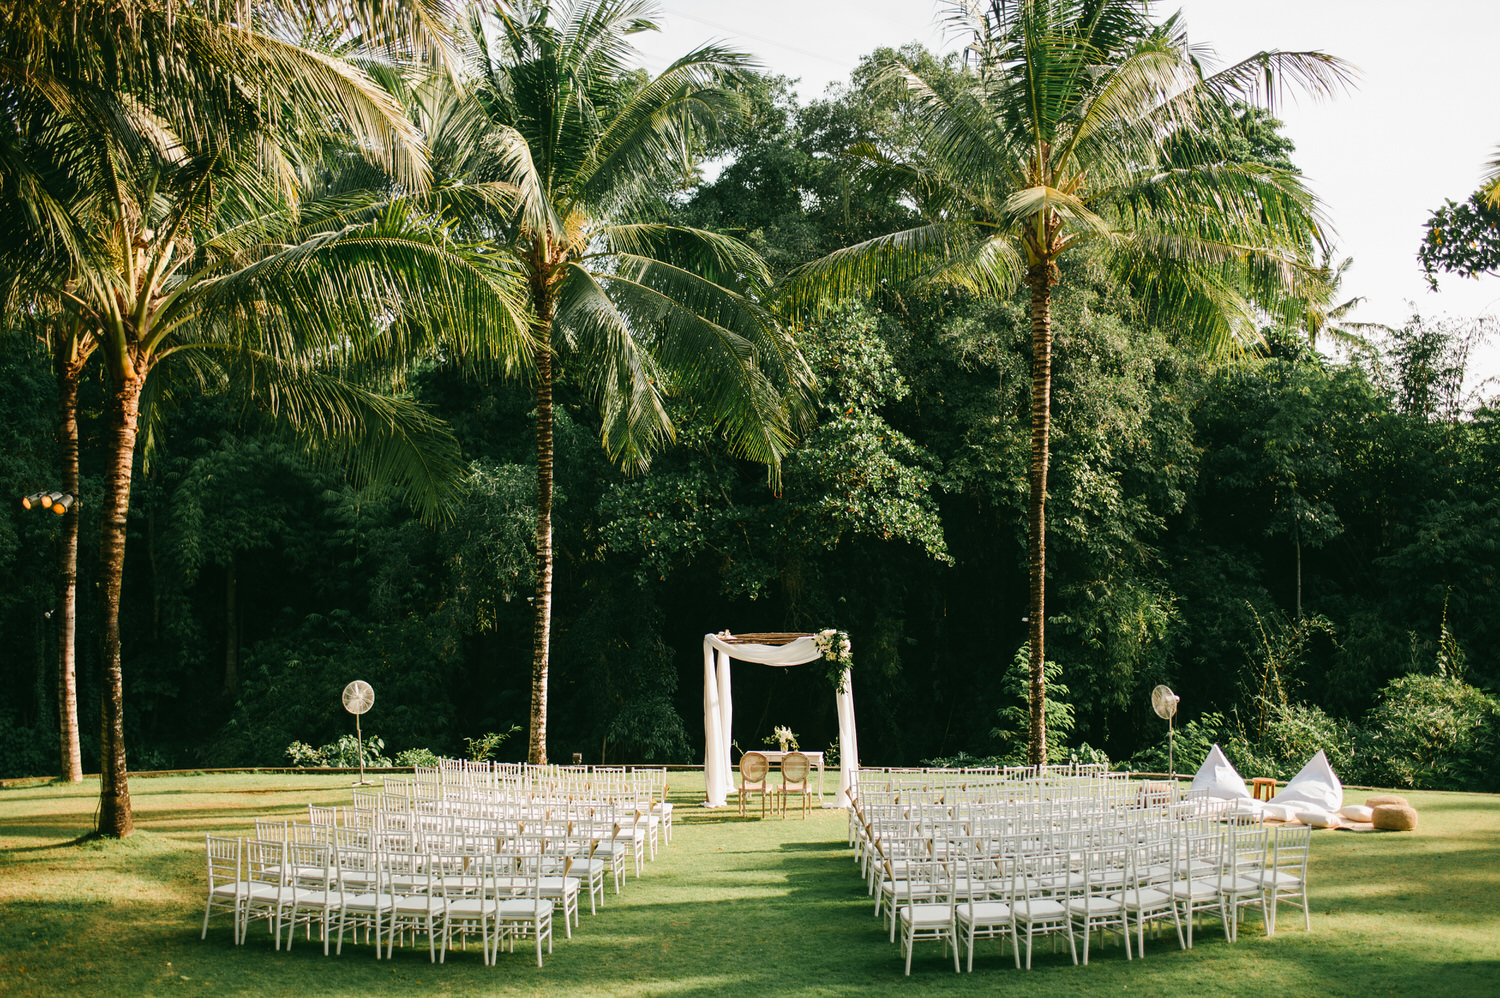 bali-wedding-destination-wedding-in-bali-bali-photographer-the-sanctuary-villa-profesional-bali-wedding-photographer-diktatphotography-clement-armine-wedding-32